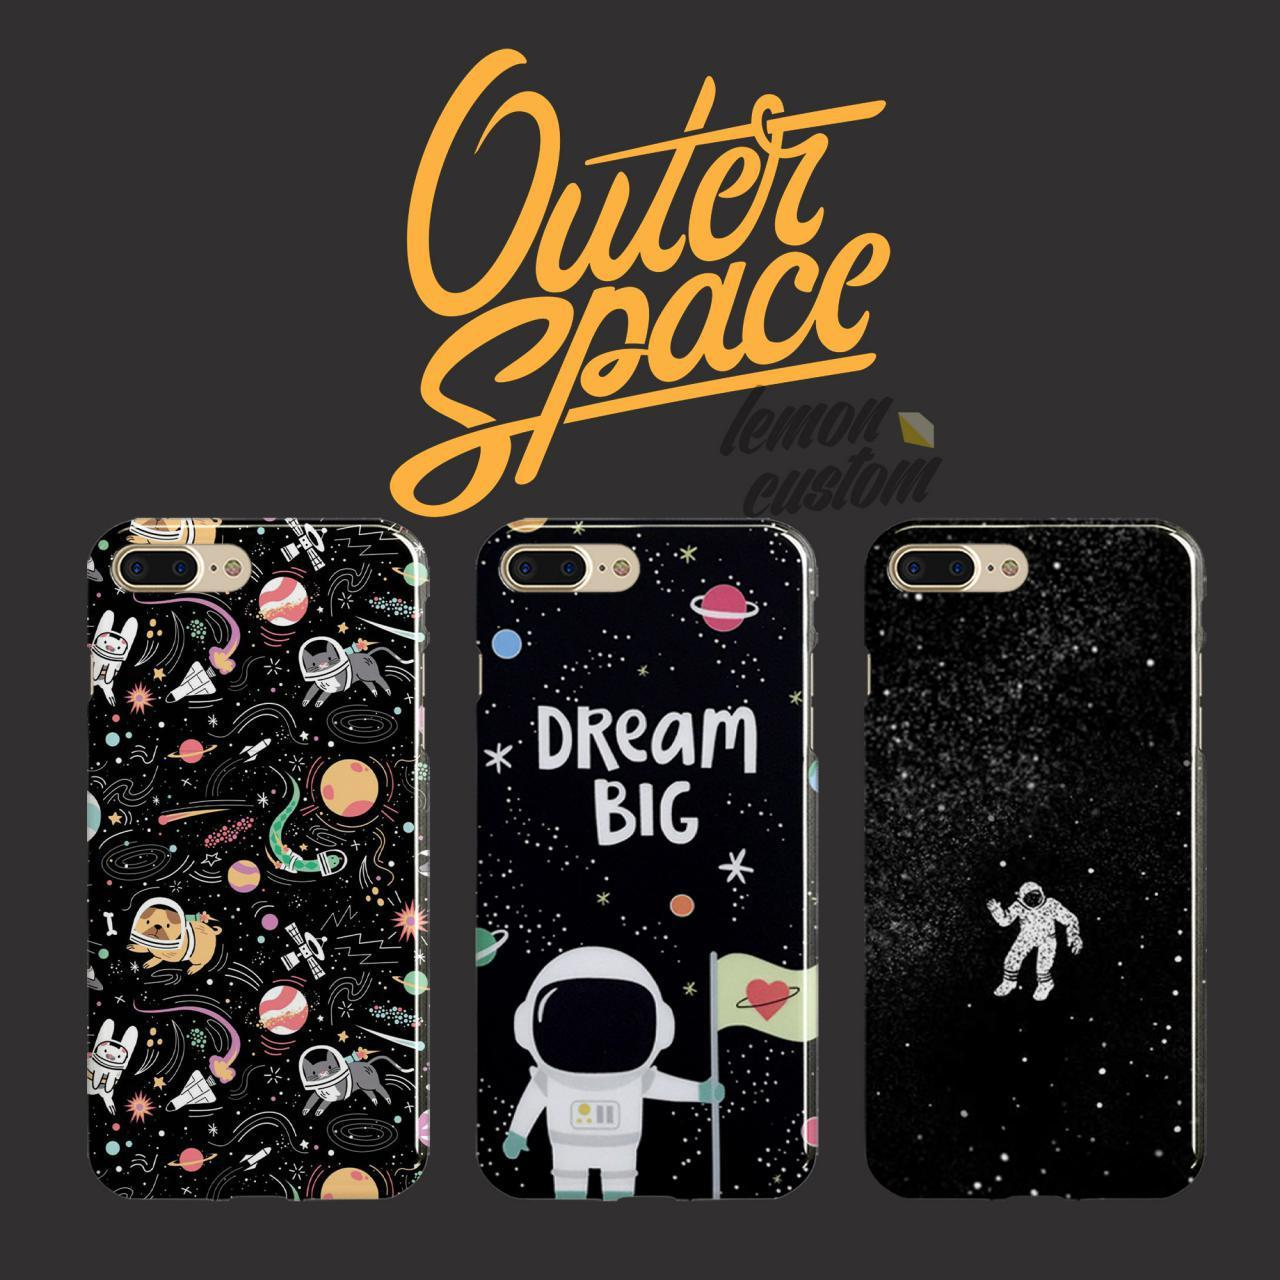 PREMIUM fullprint case hp custom apple Iphone 6 / 6s - gambar outer space